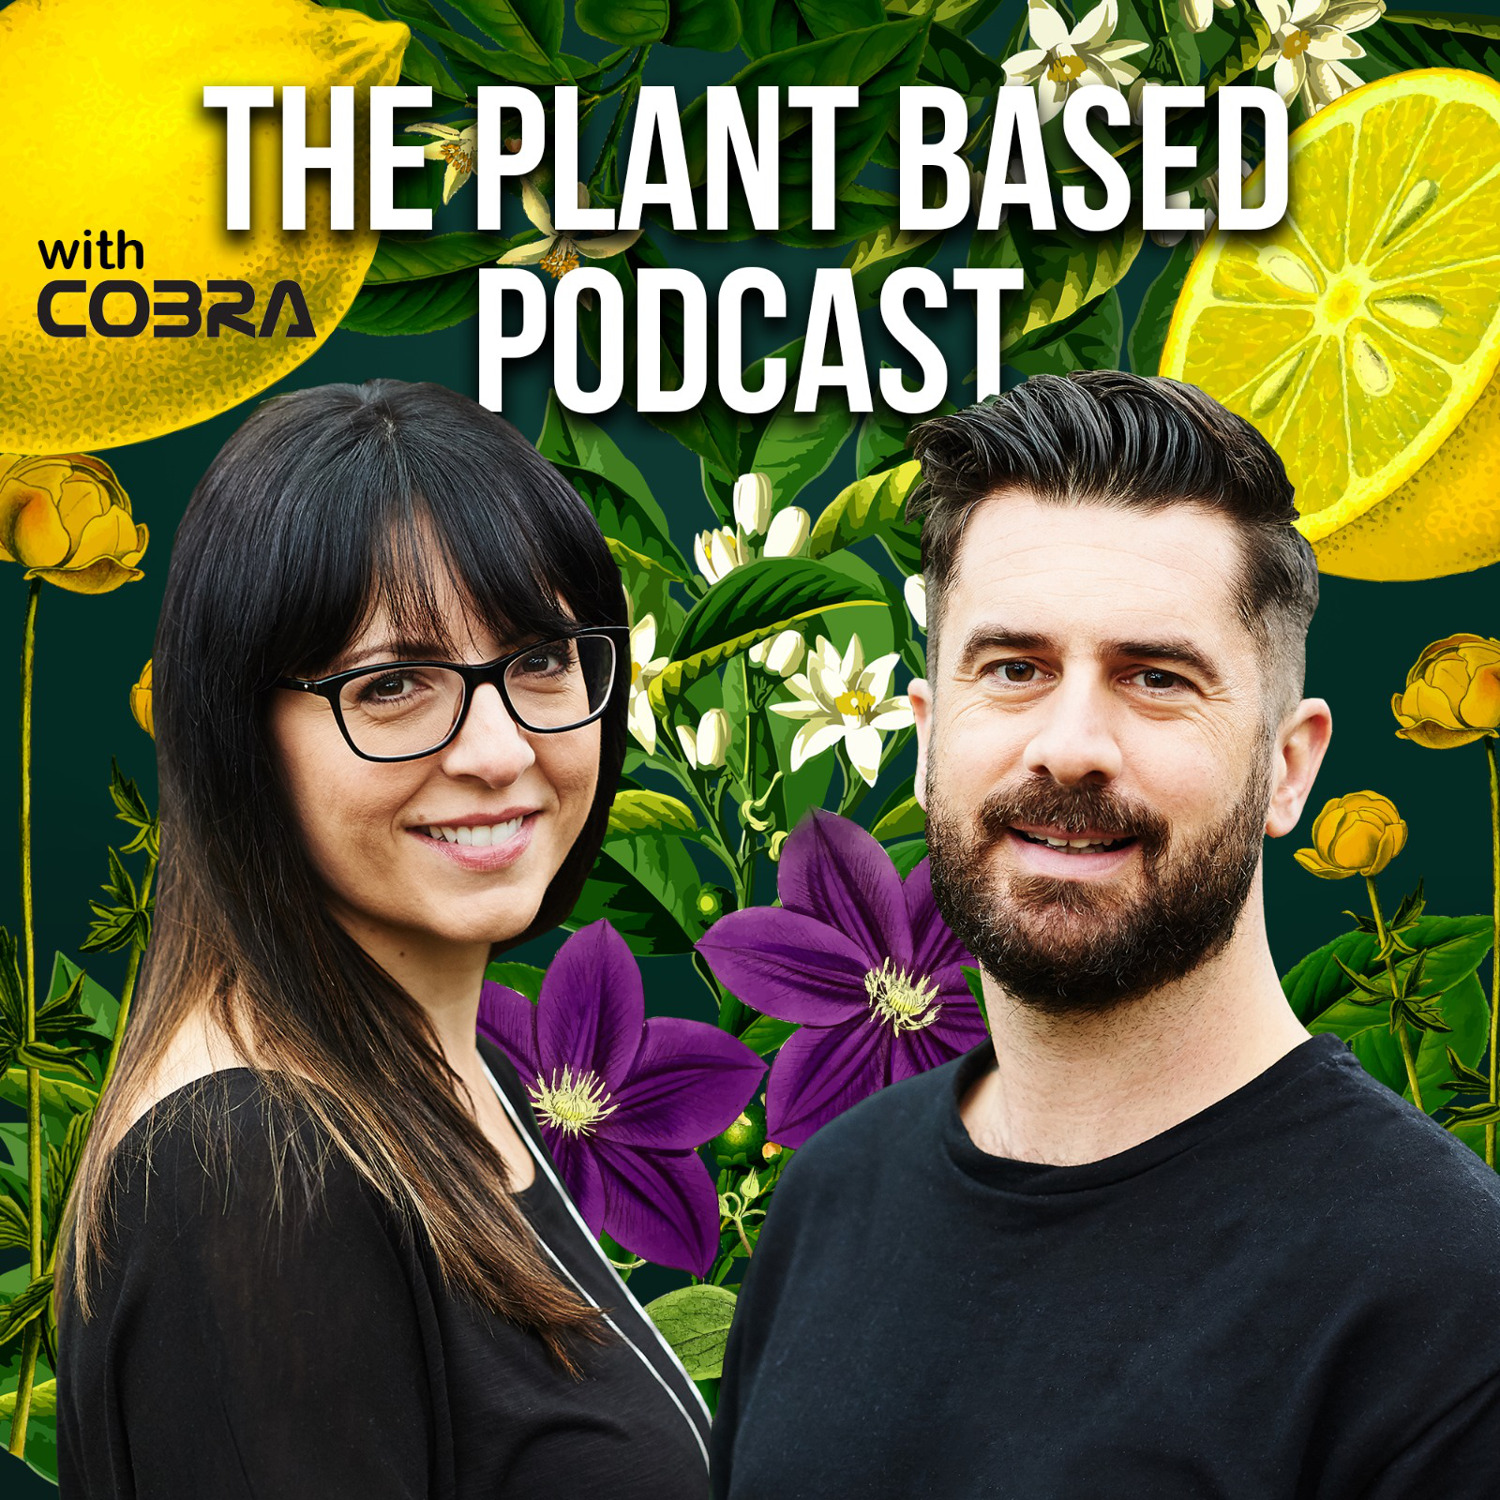 The Plant Based Podcast S4 Episode Six - The power of plants